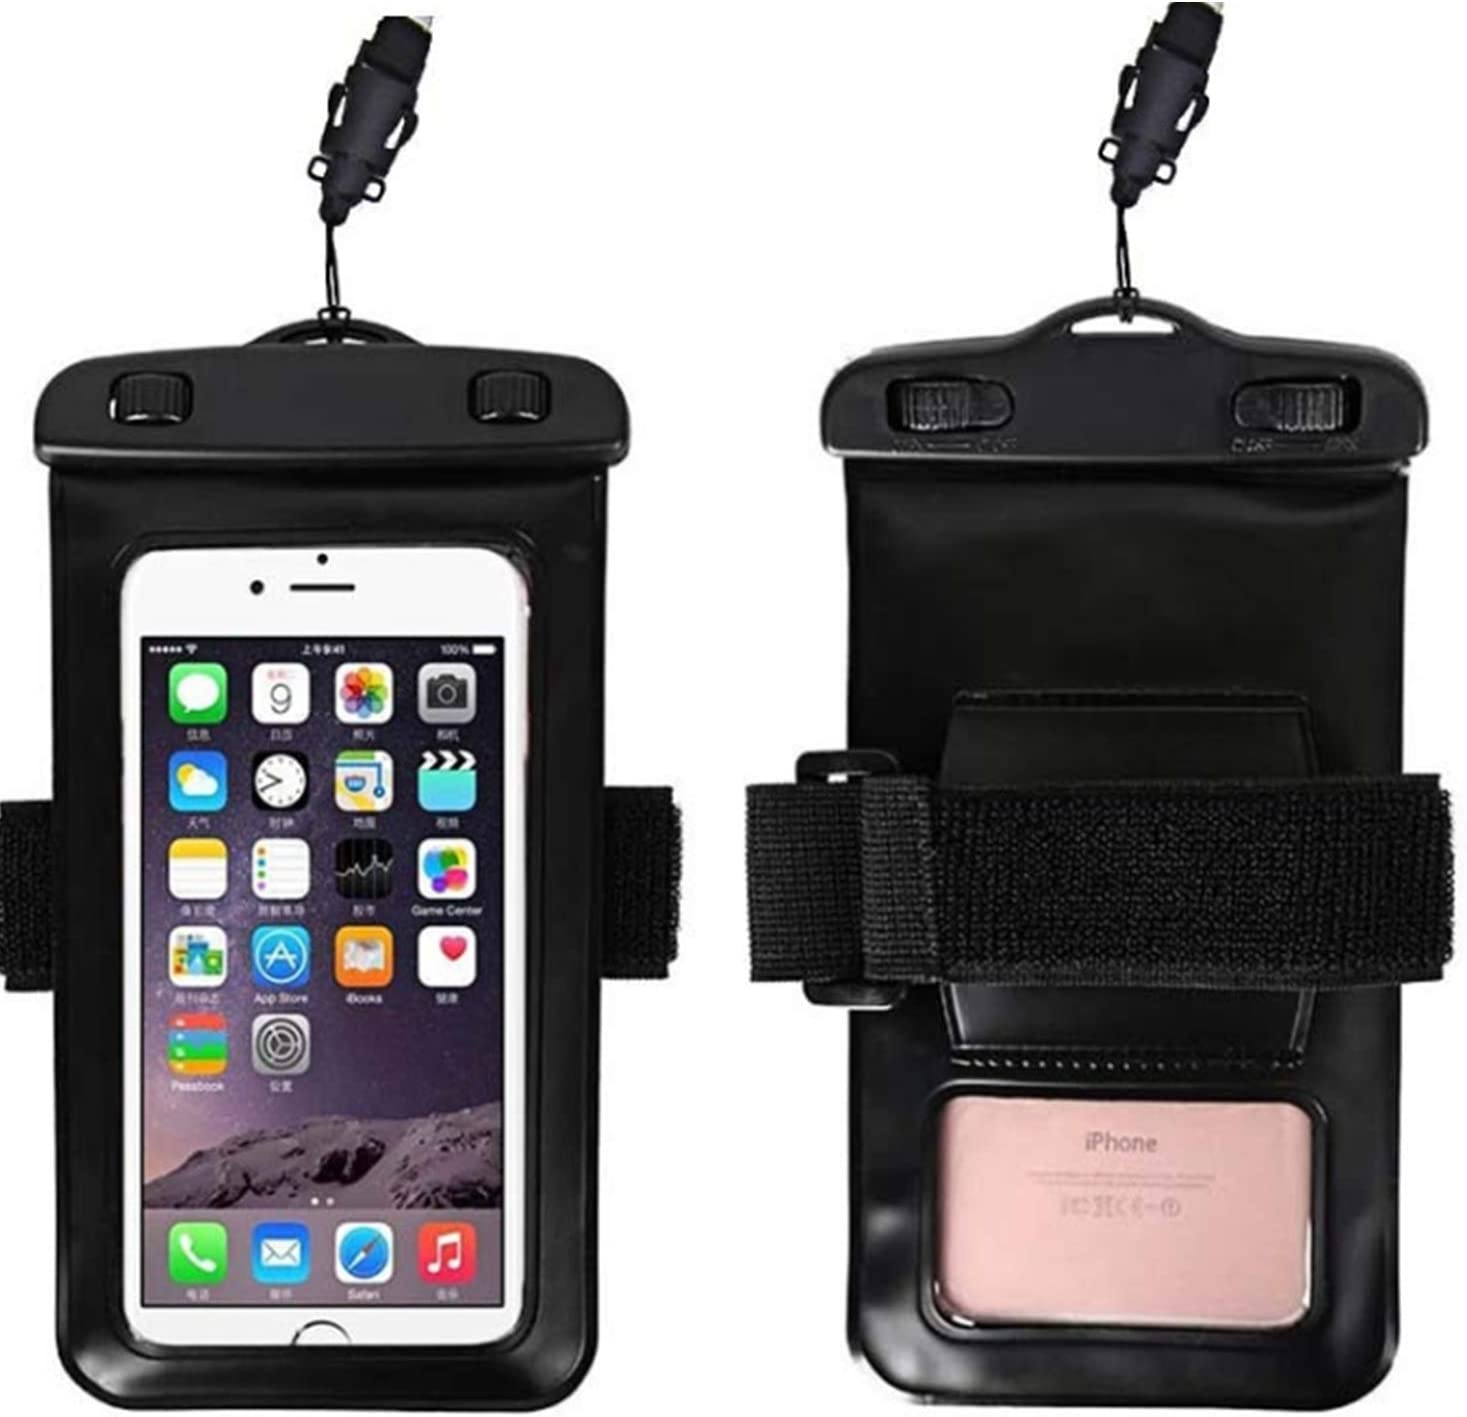 Universal Waterproof Pouch with Armband, Lightweight Underwater Cellphone Dry Bag for Samsung Galaxy F22, M32, A22, F52 5G, M42 5G, M12, Quantum 2, F12, F02s, A72, A52 5G